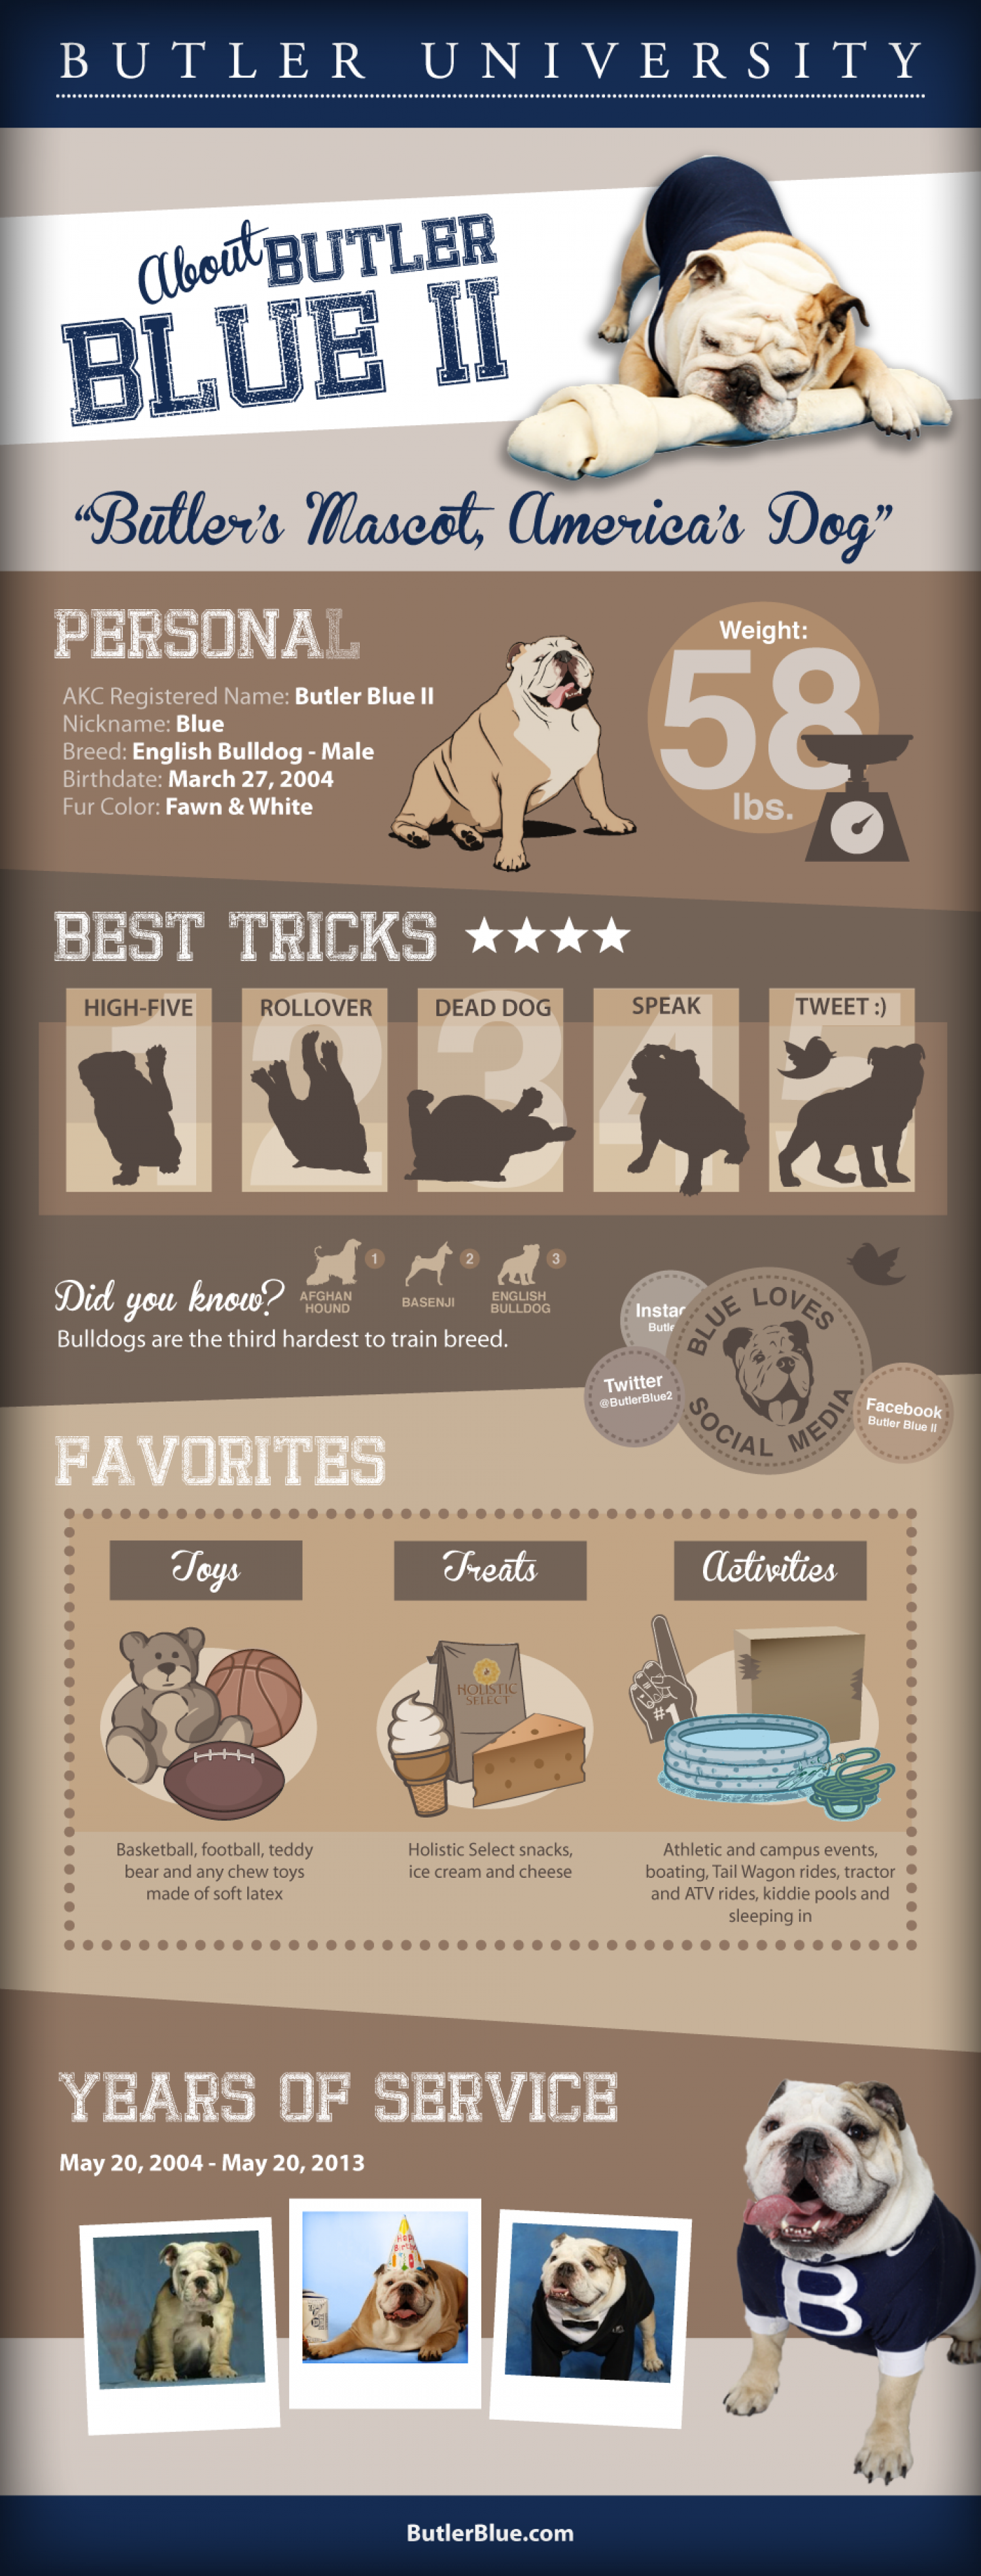 About Butler Blue II Infographic